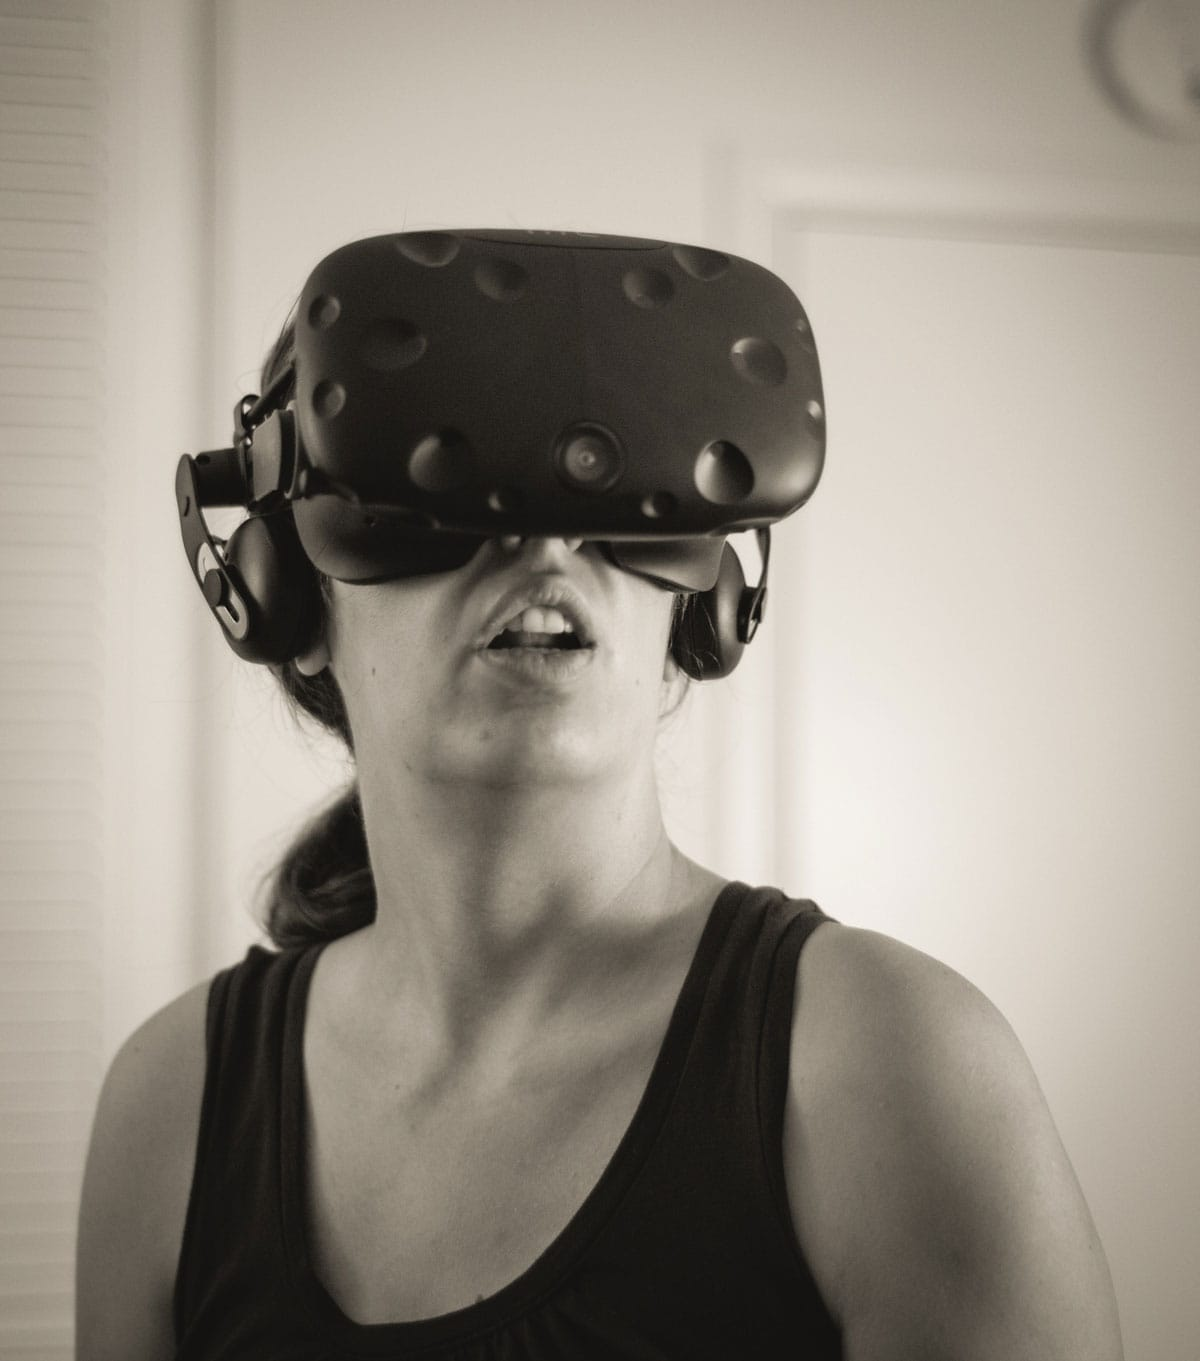 A black and white photograph of a person with virtual reality goggles.